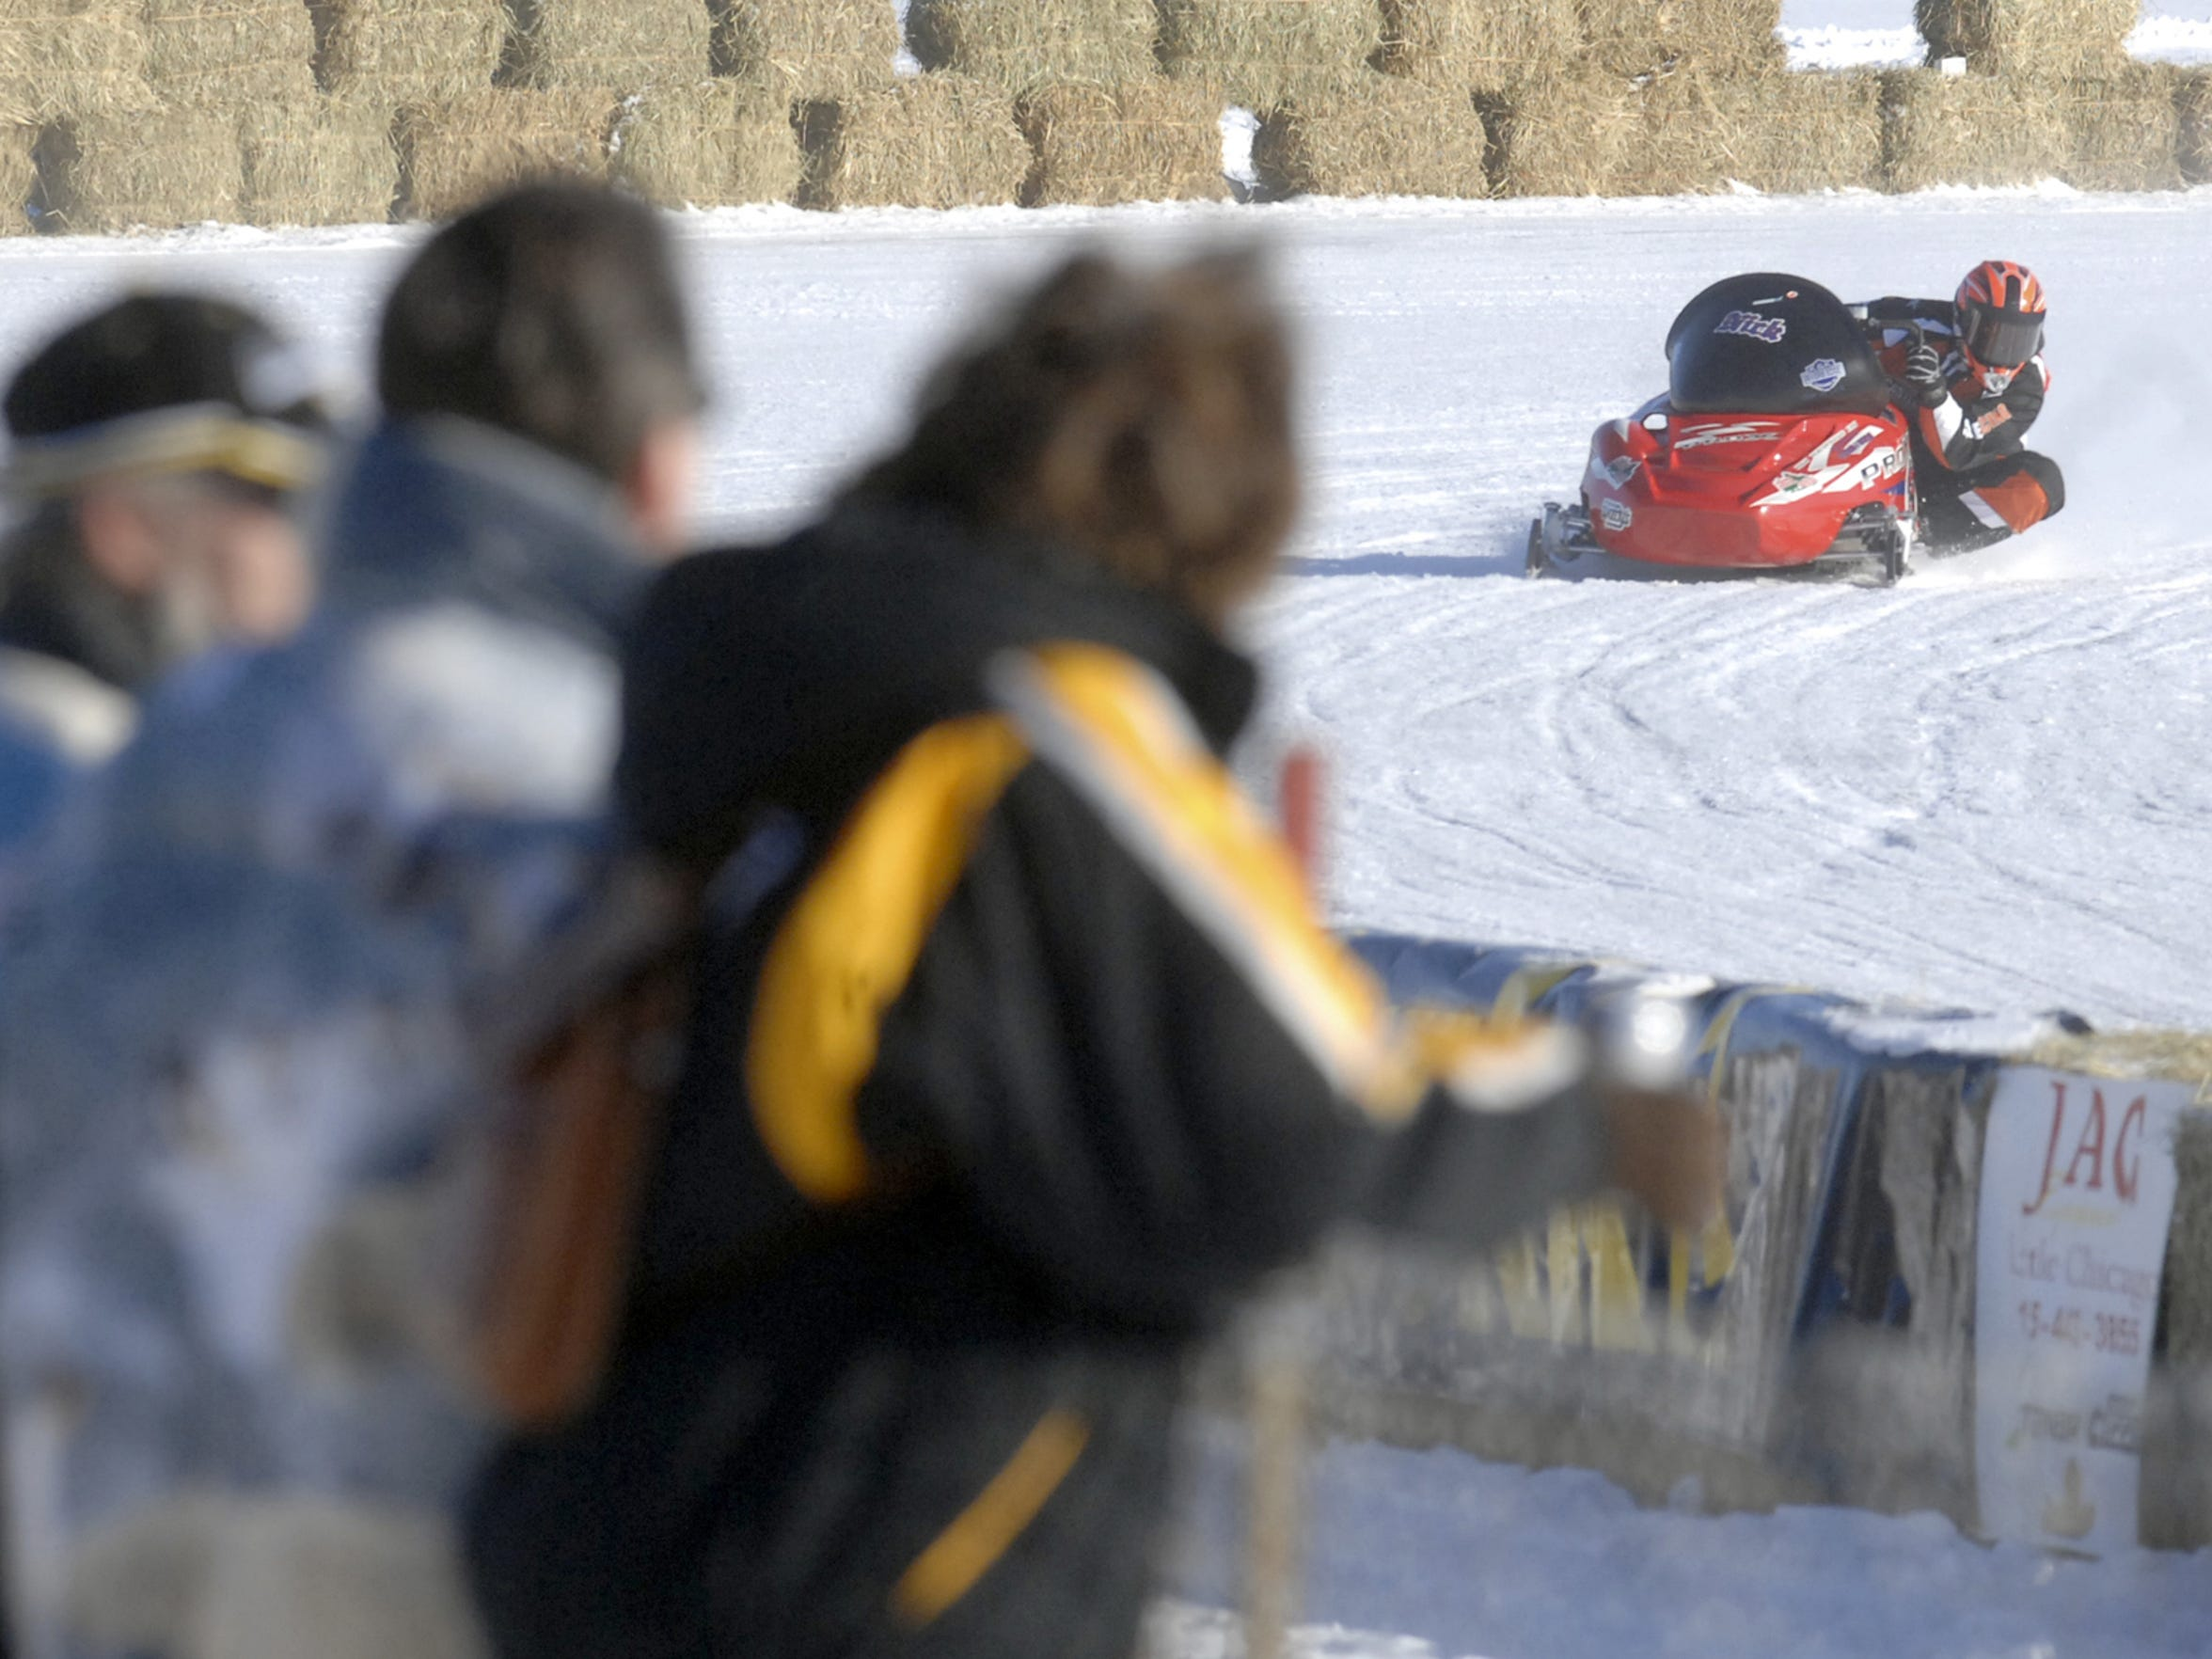 In this 2007 file photo, spectators watch as drivers compete in the Wausau 525 Snowmobile race at Sunnyvale Park.